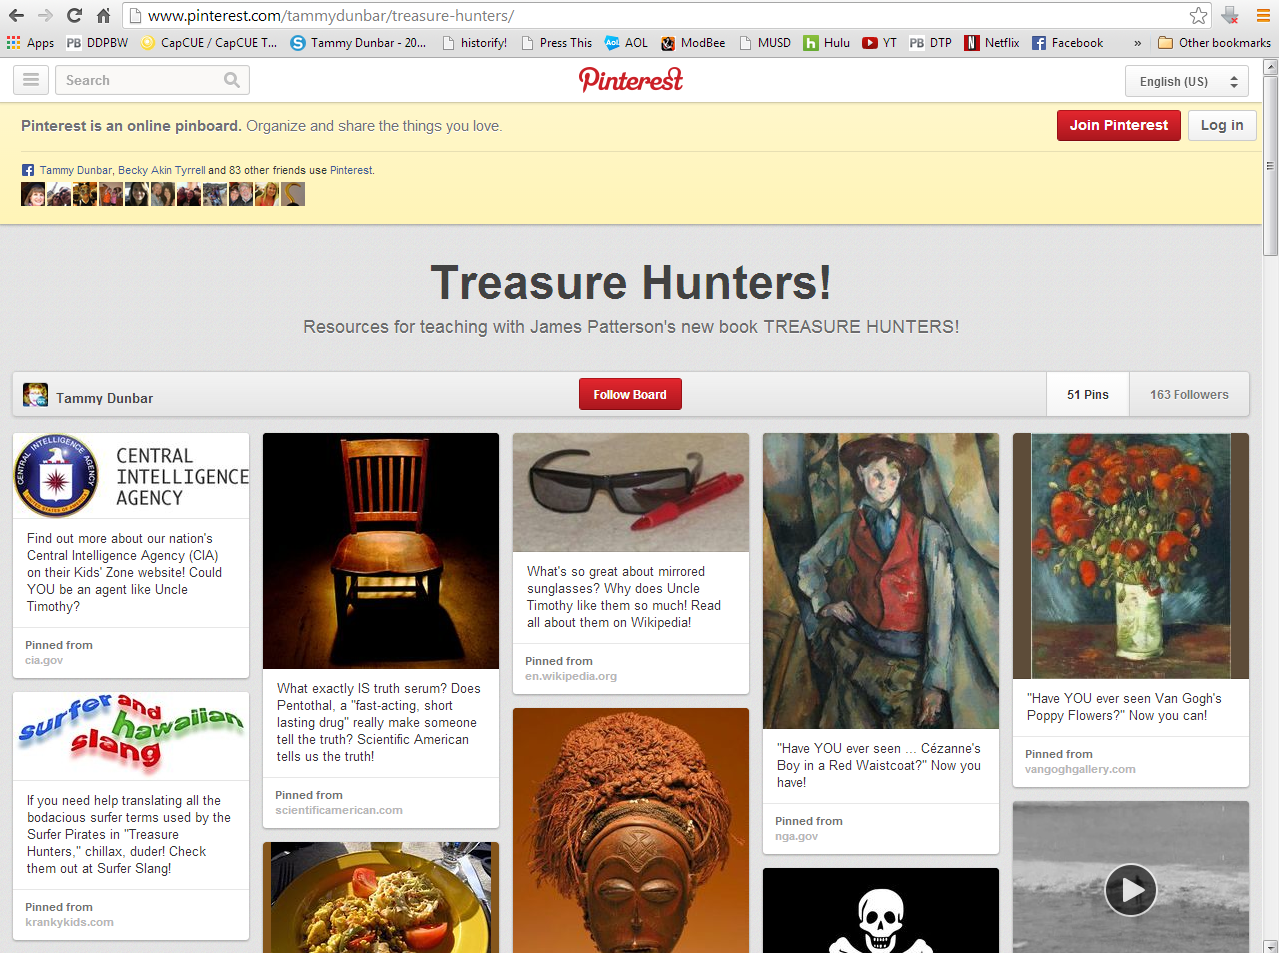 pinteresttreasurehunters